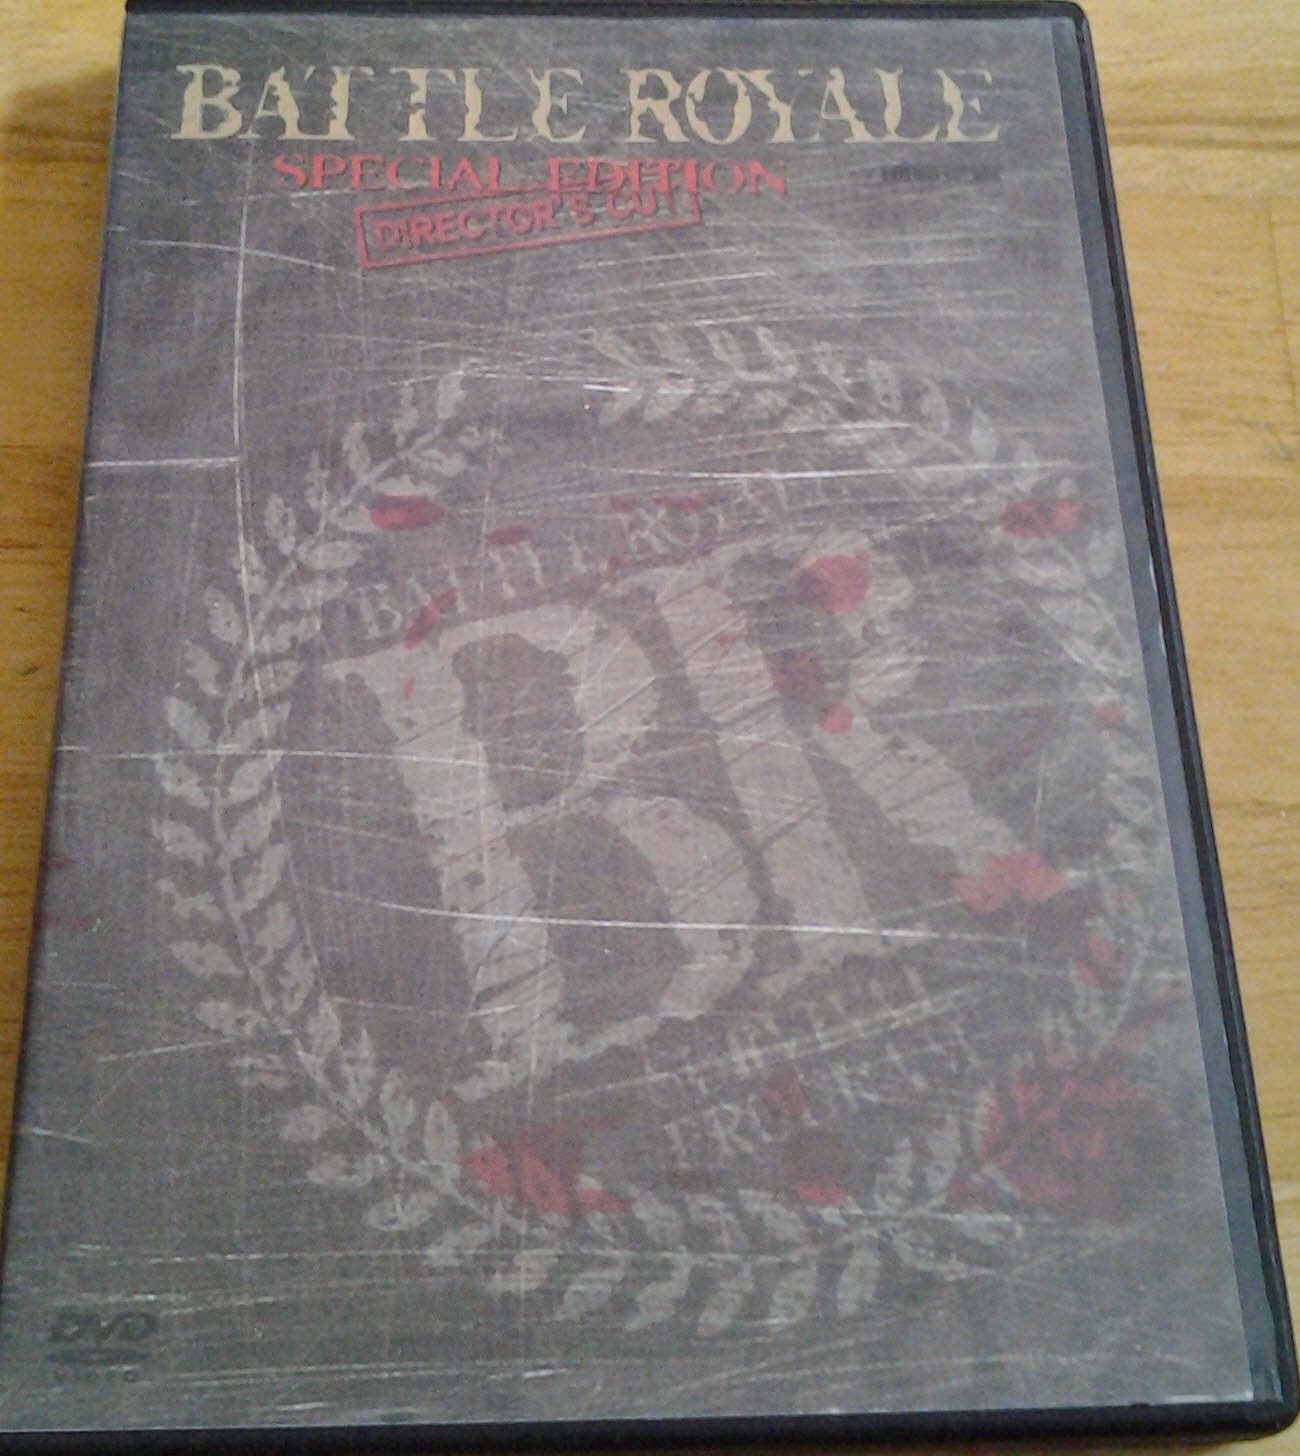 DVD Cover to Battle Royale